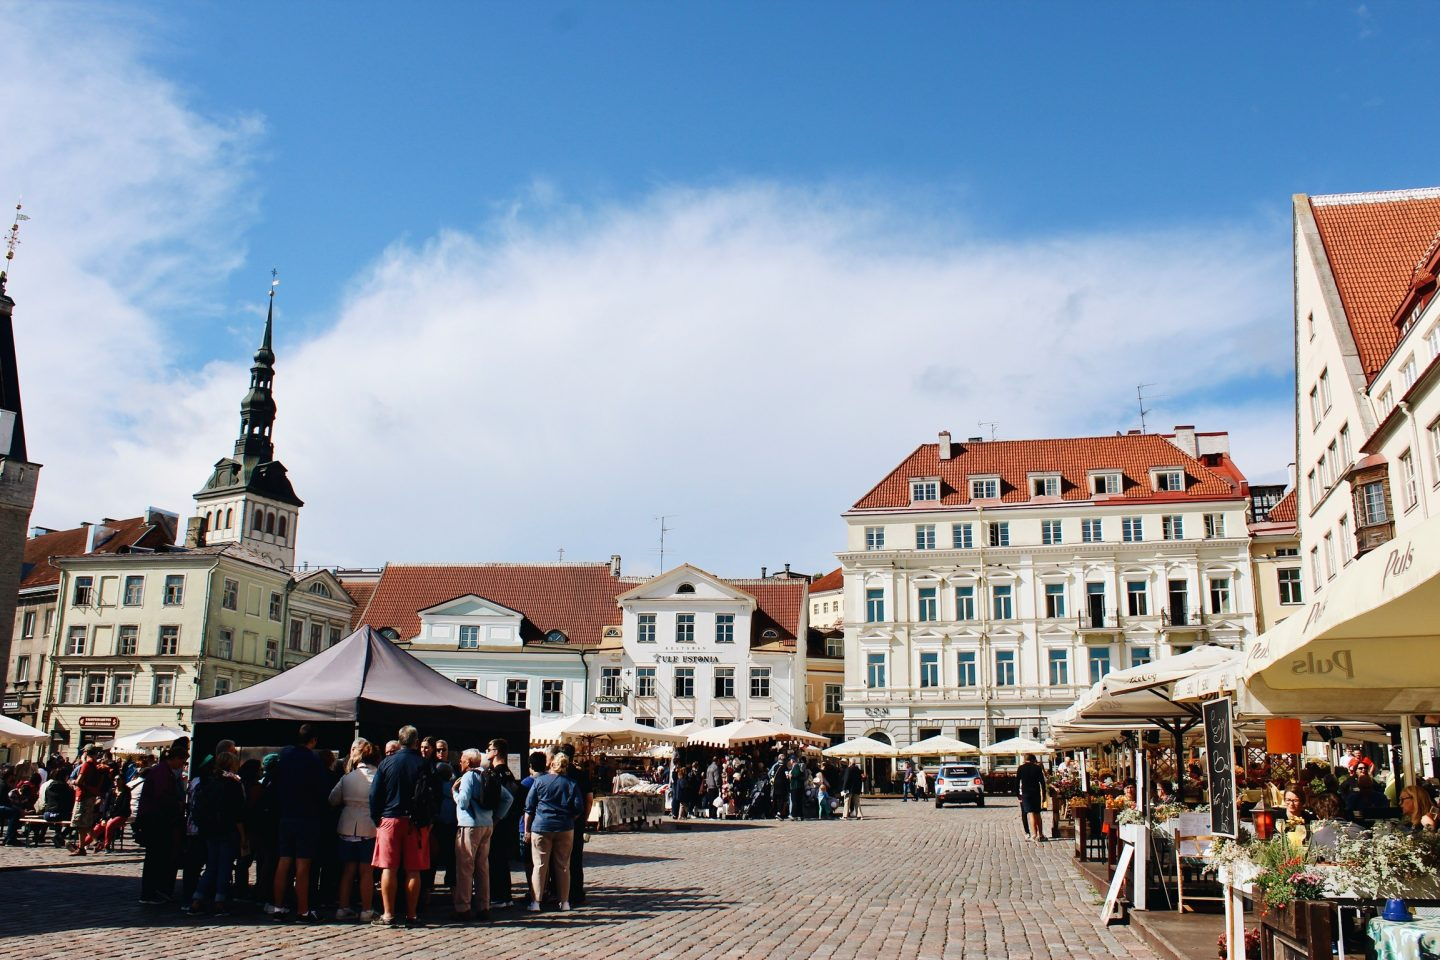 Main square in the lower town of Tallinn, Estonia!